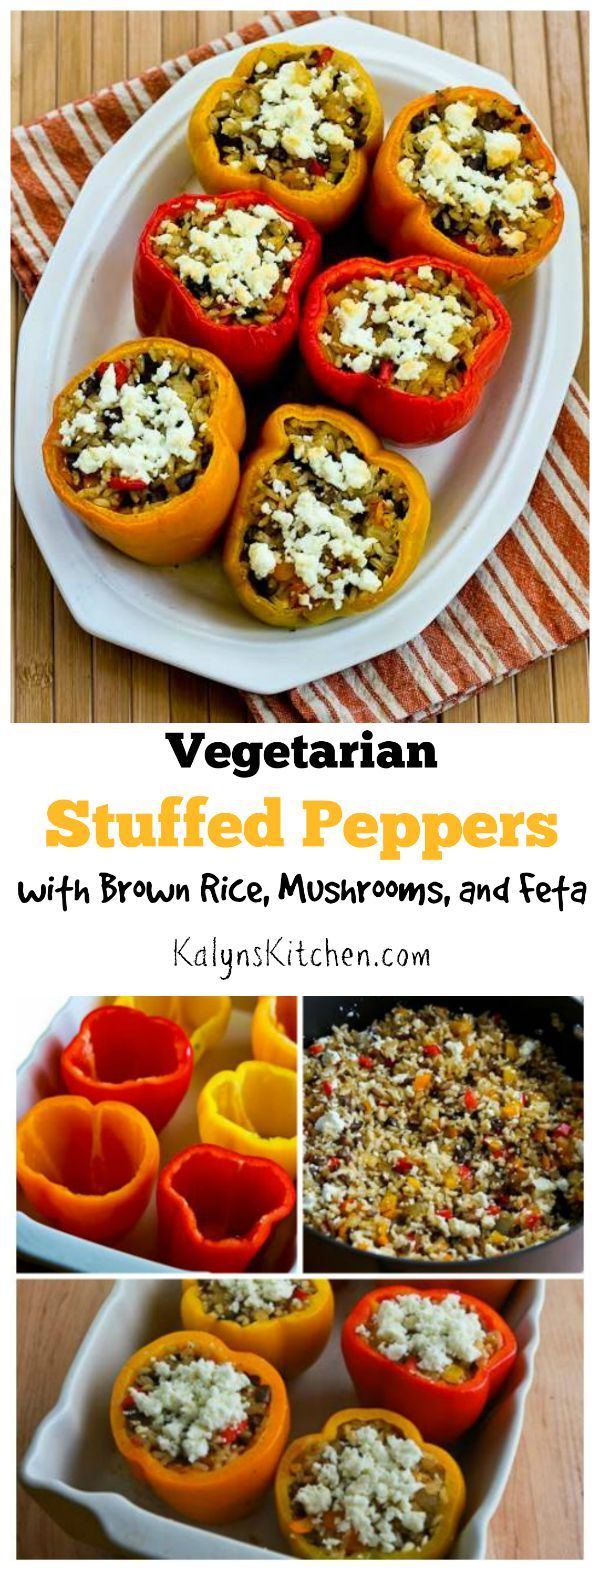 Vegetarian Stuffed Peppers with Brown Rice, Mushrooms, and Feta – Kalyn's Kitchen